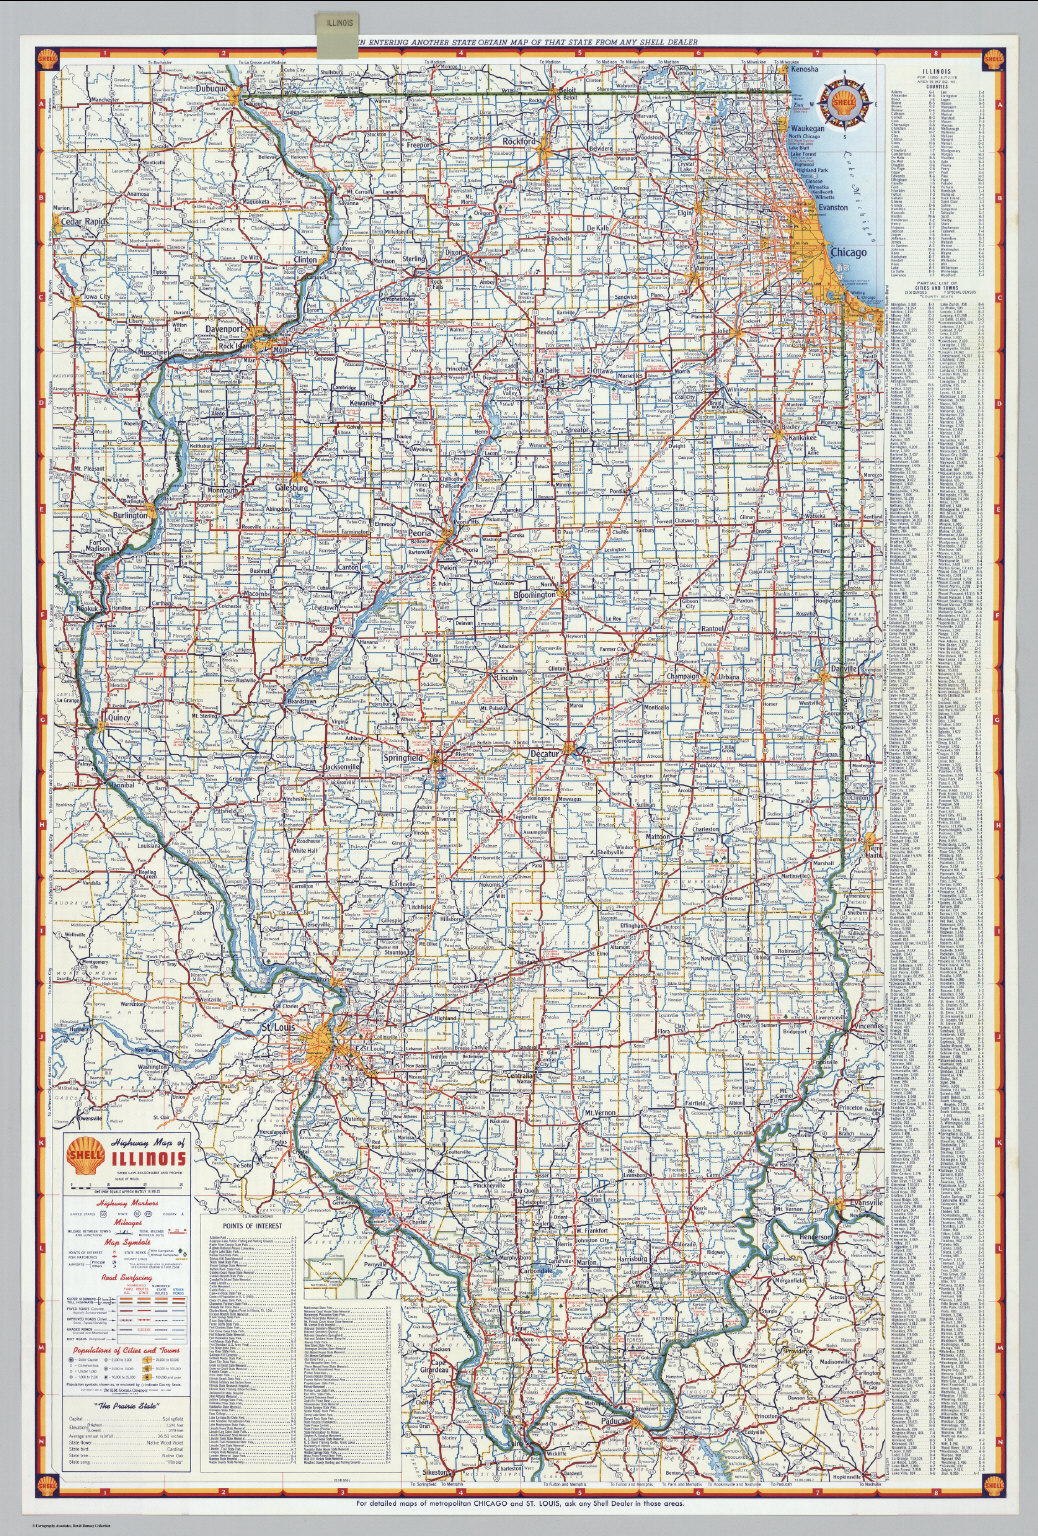 Shell Highway Map Of Illinois David Rumsey Historical Map - Illinois road map